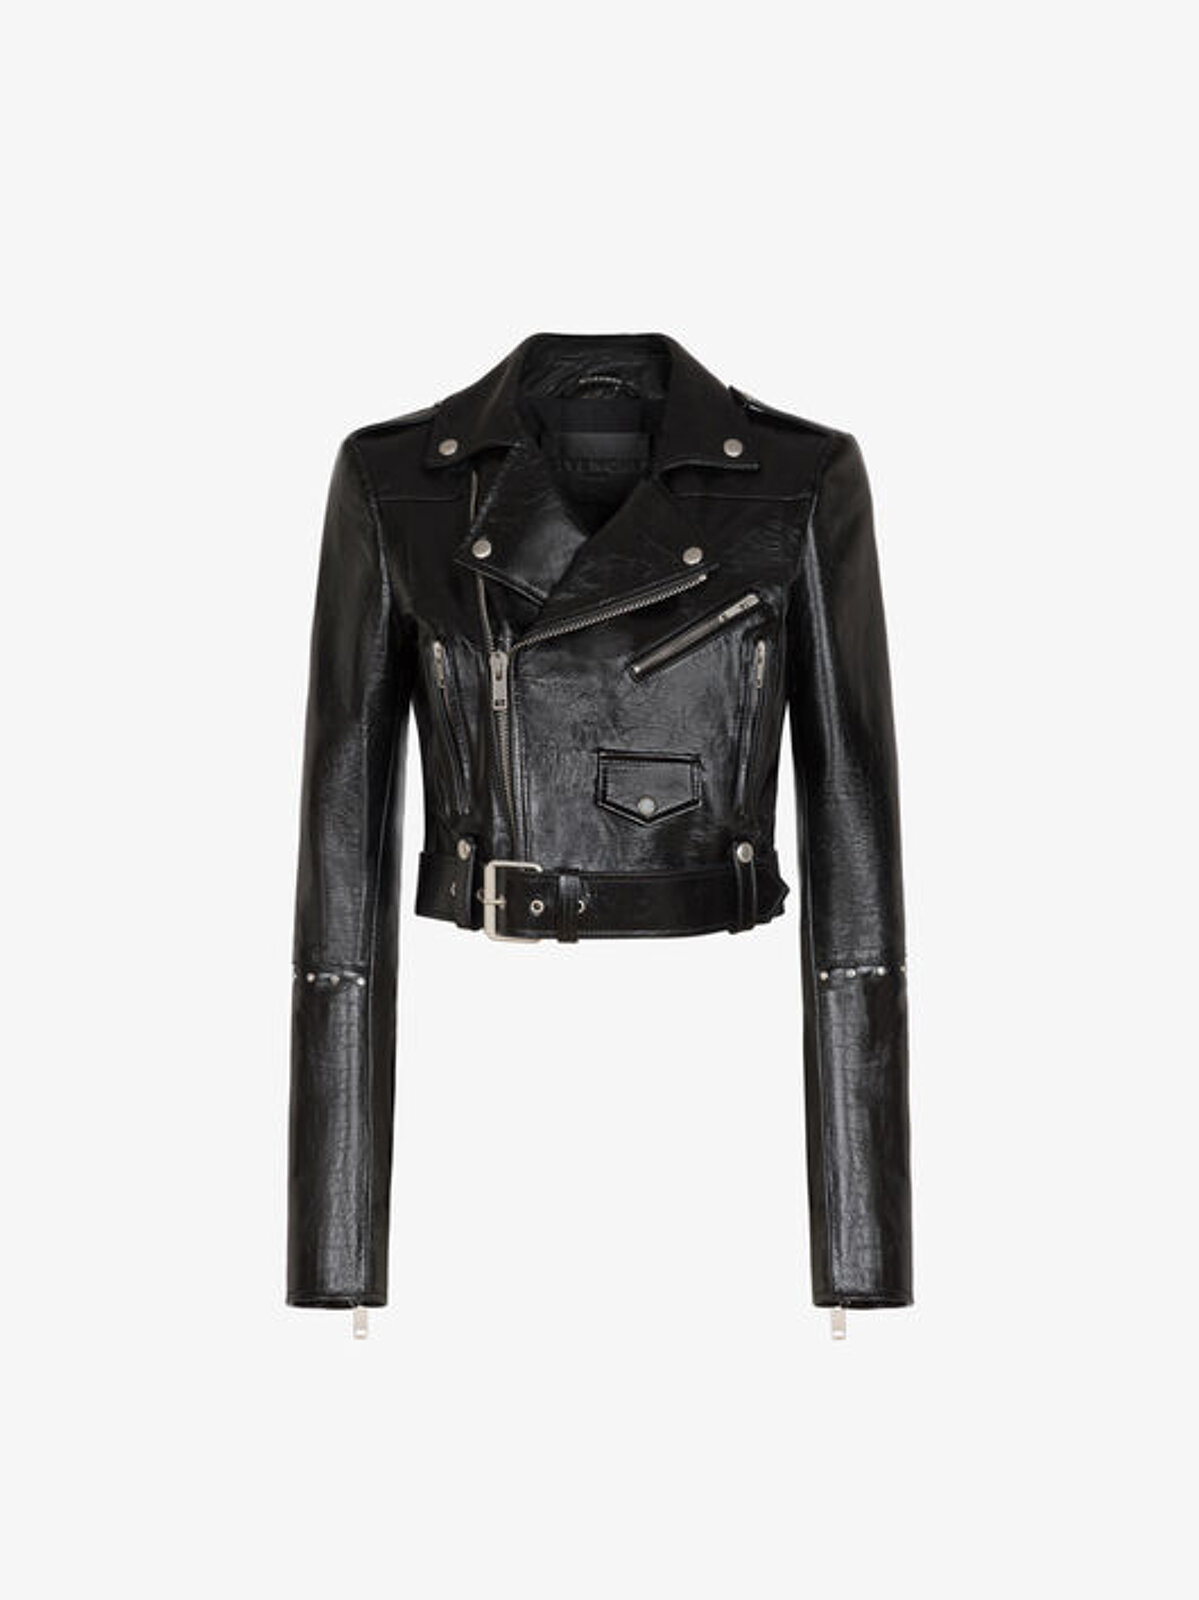 Biker Style Jacket With Studs - Givenchy